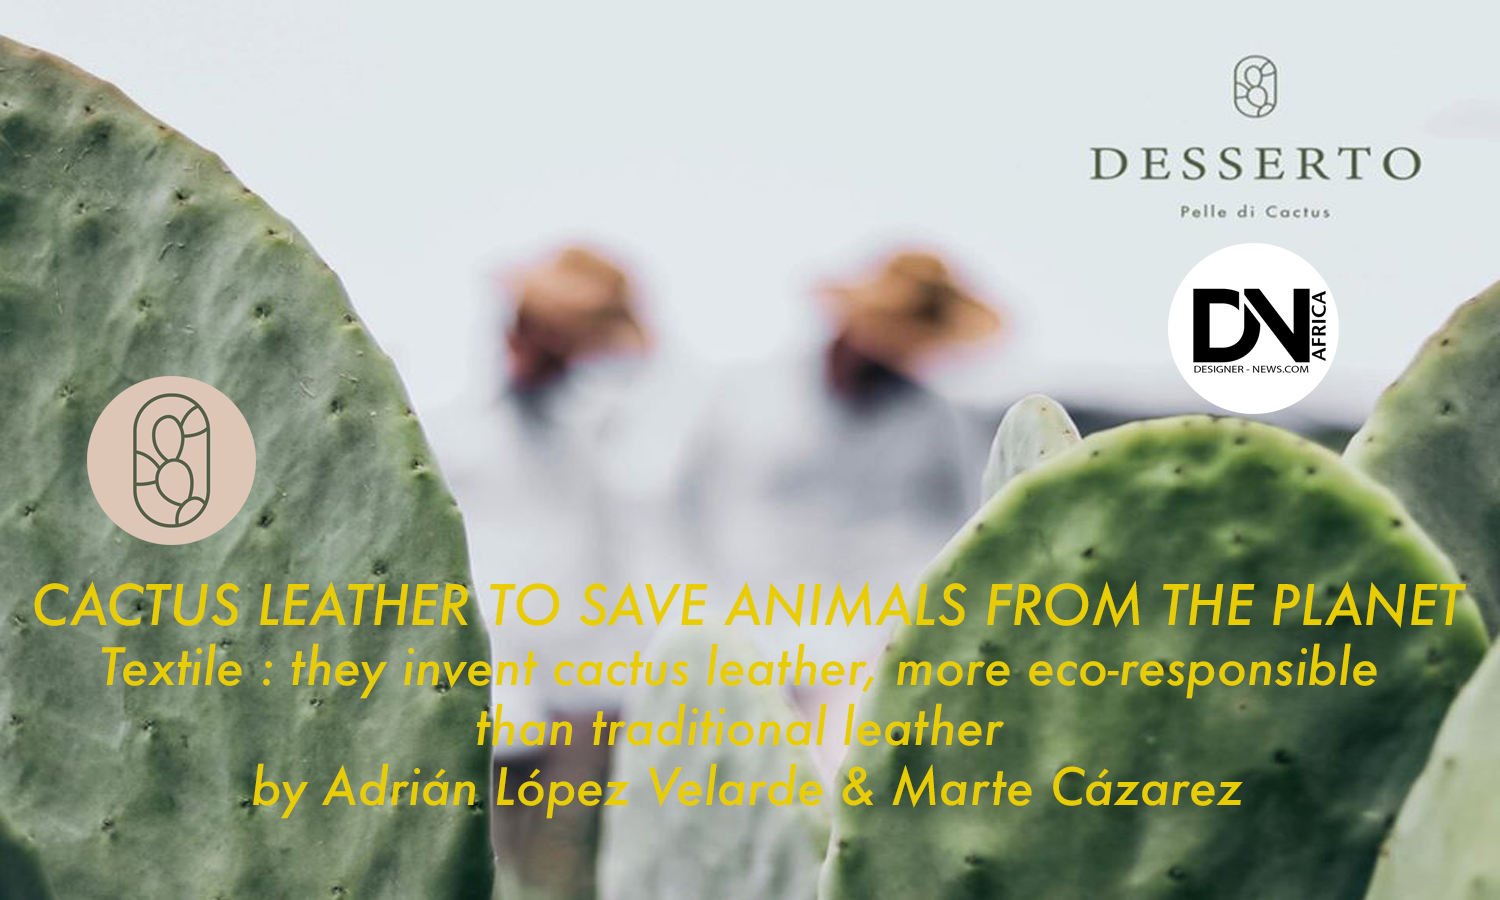 AFRICAN FASHION STYLE MAGAZINE - CACTUS LEATHER TO SAVE ANIMALS FROM THE PLANET byAdrián López Velarde & Marte Cázarez - Photographer DAN NGU - Media Partner DN AFRICA - STUDIO 24 NIGERIA - STUDIO 24 INTERNATIONAL - Ifeanyi Christopher Oputa MD AND CEO OF COLVI LIMITED AND STUDIO 24 - CHEVEUX CHERIE and CHEVEUX CHERIE STUDIO BY MARIEME DUBOZ- Fashion Editor Nahomie NOOR COULIBALY